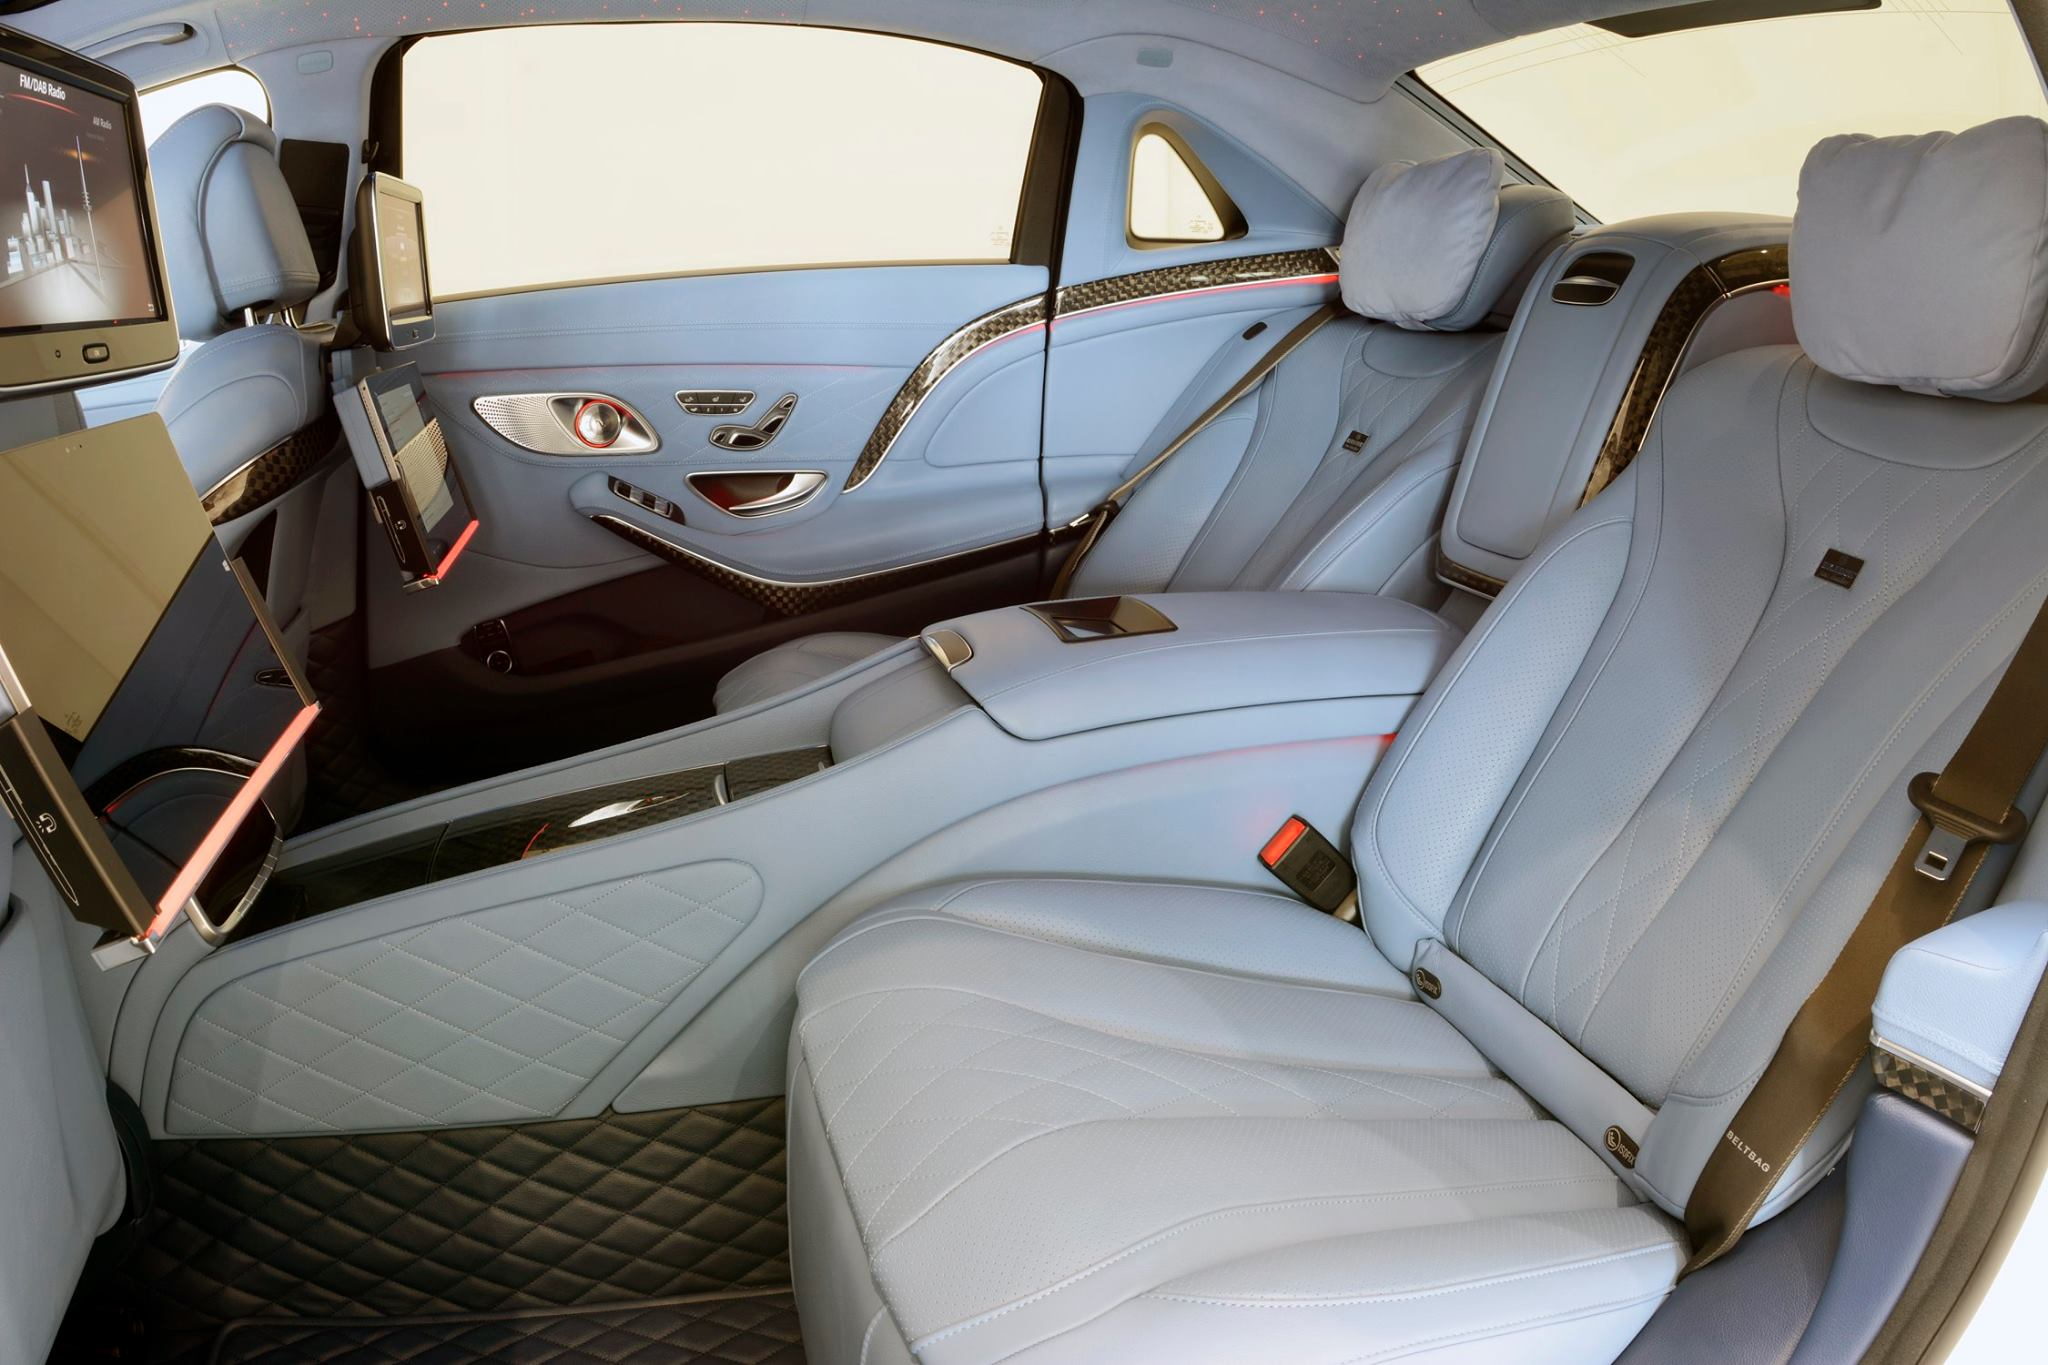 maybach s600 turns into brabus rocket 900 with blue leather